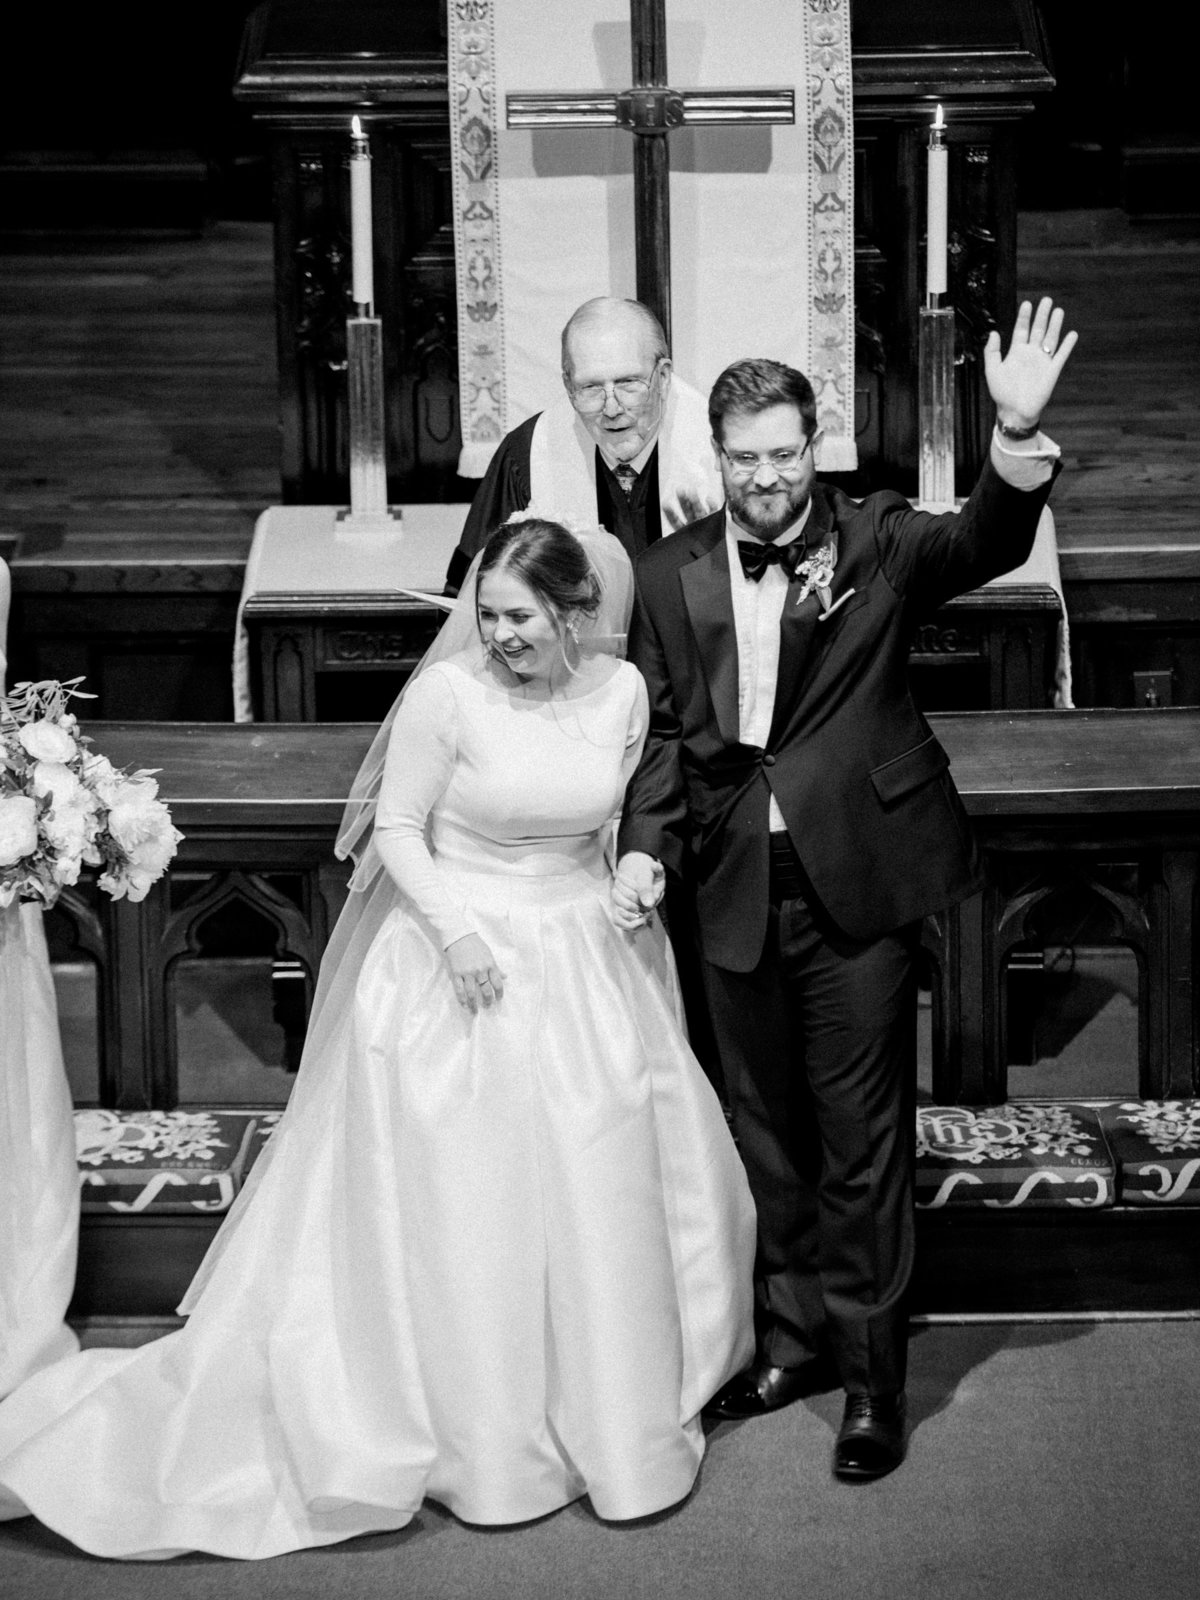 Courtney Hanson Photography - Festive Holiday Wedding in Dallas at Hickory Street Annex-0173